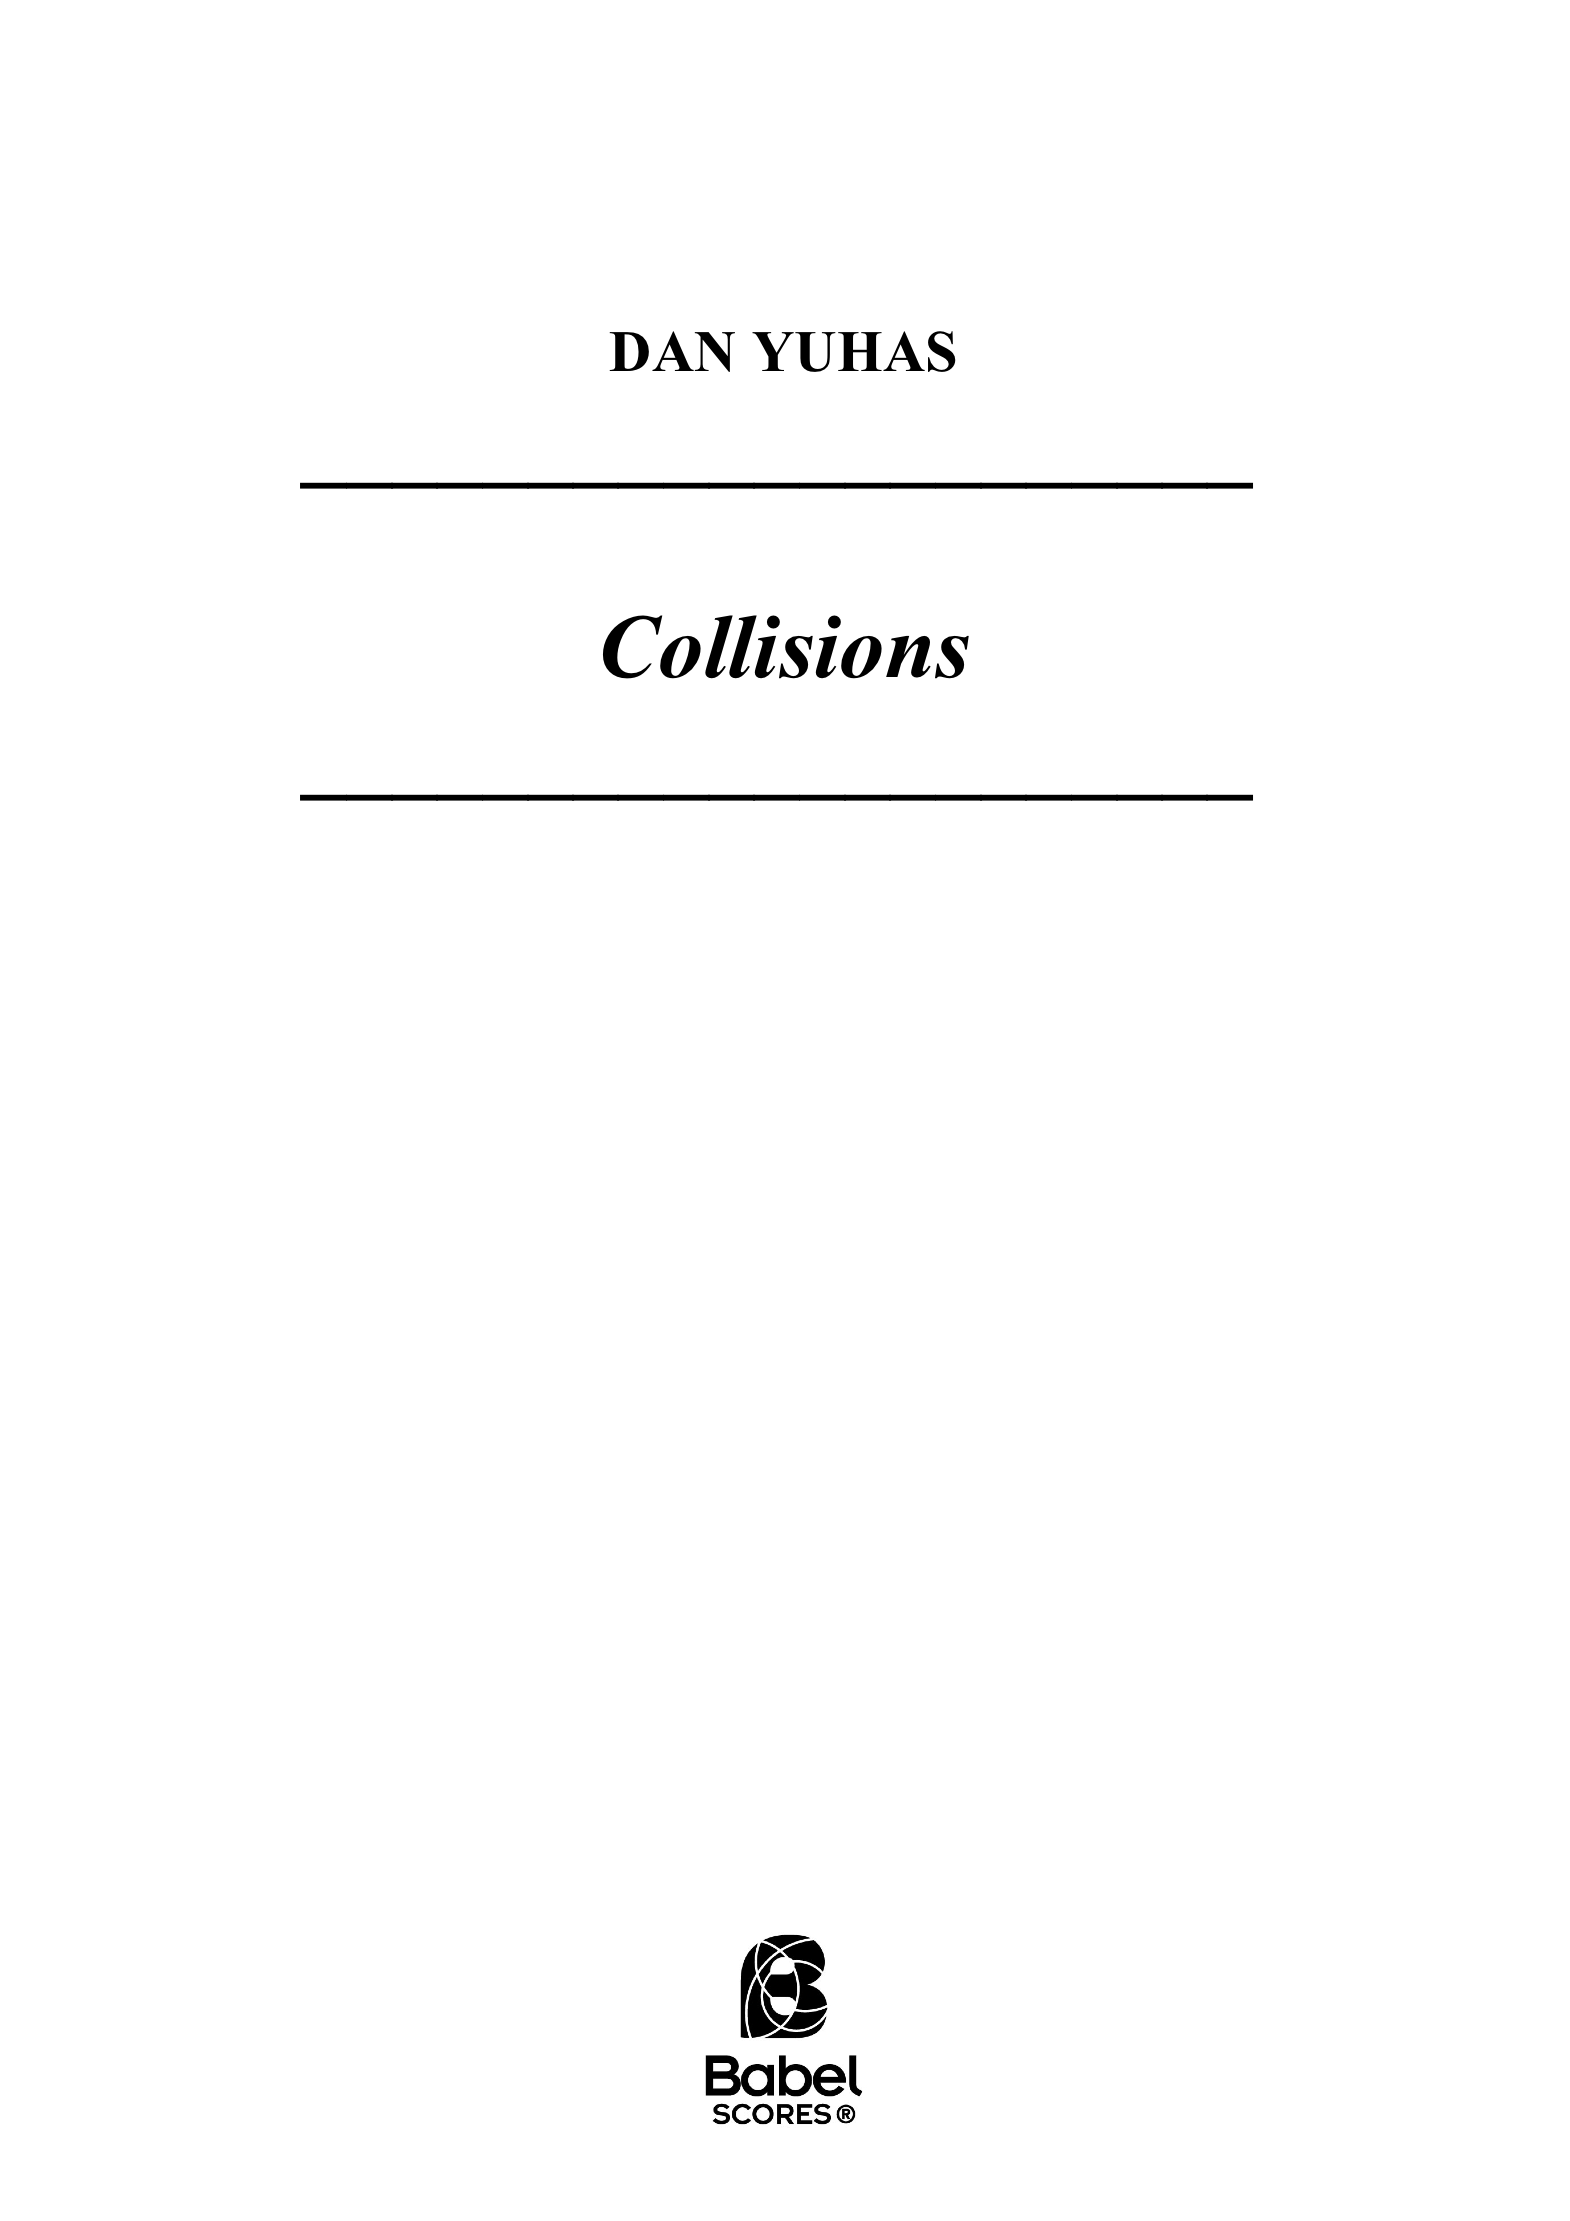 Collisions A4 z